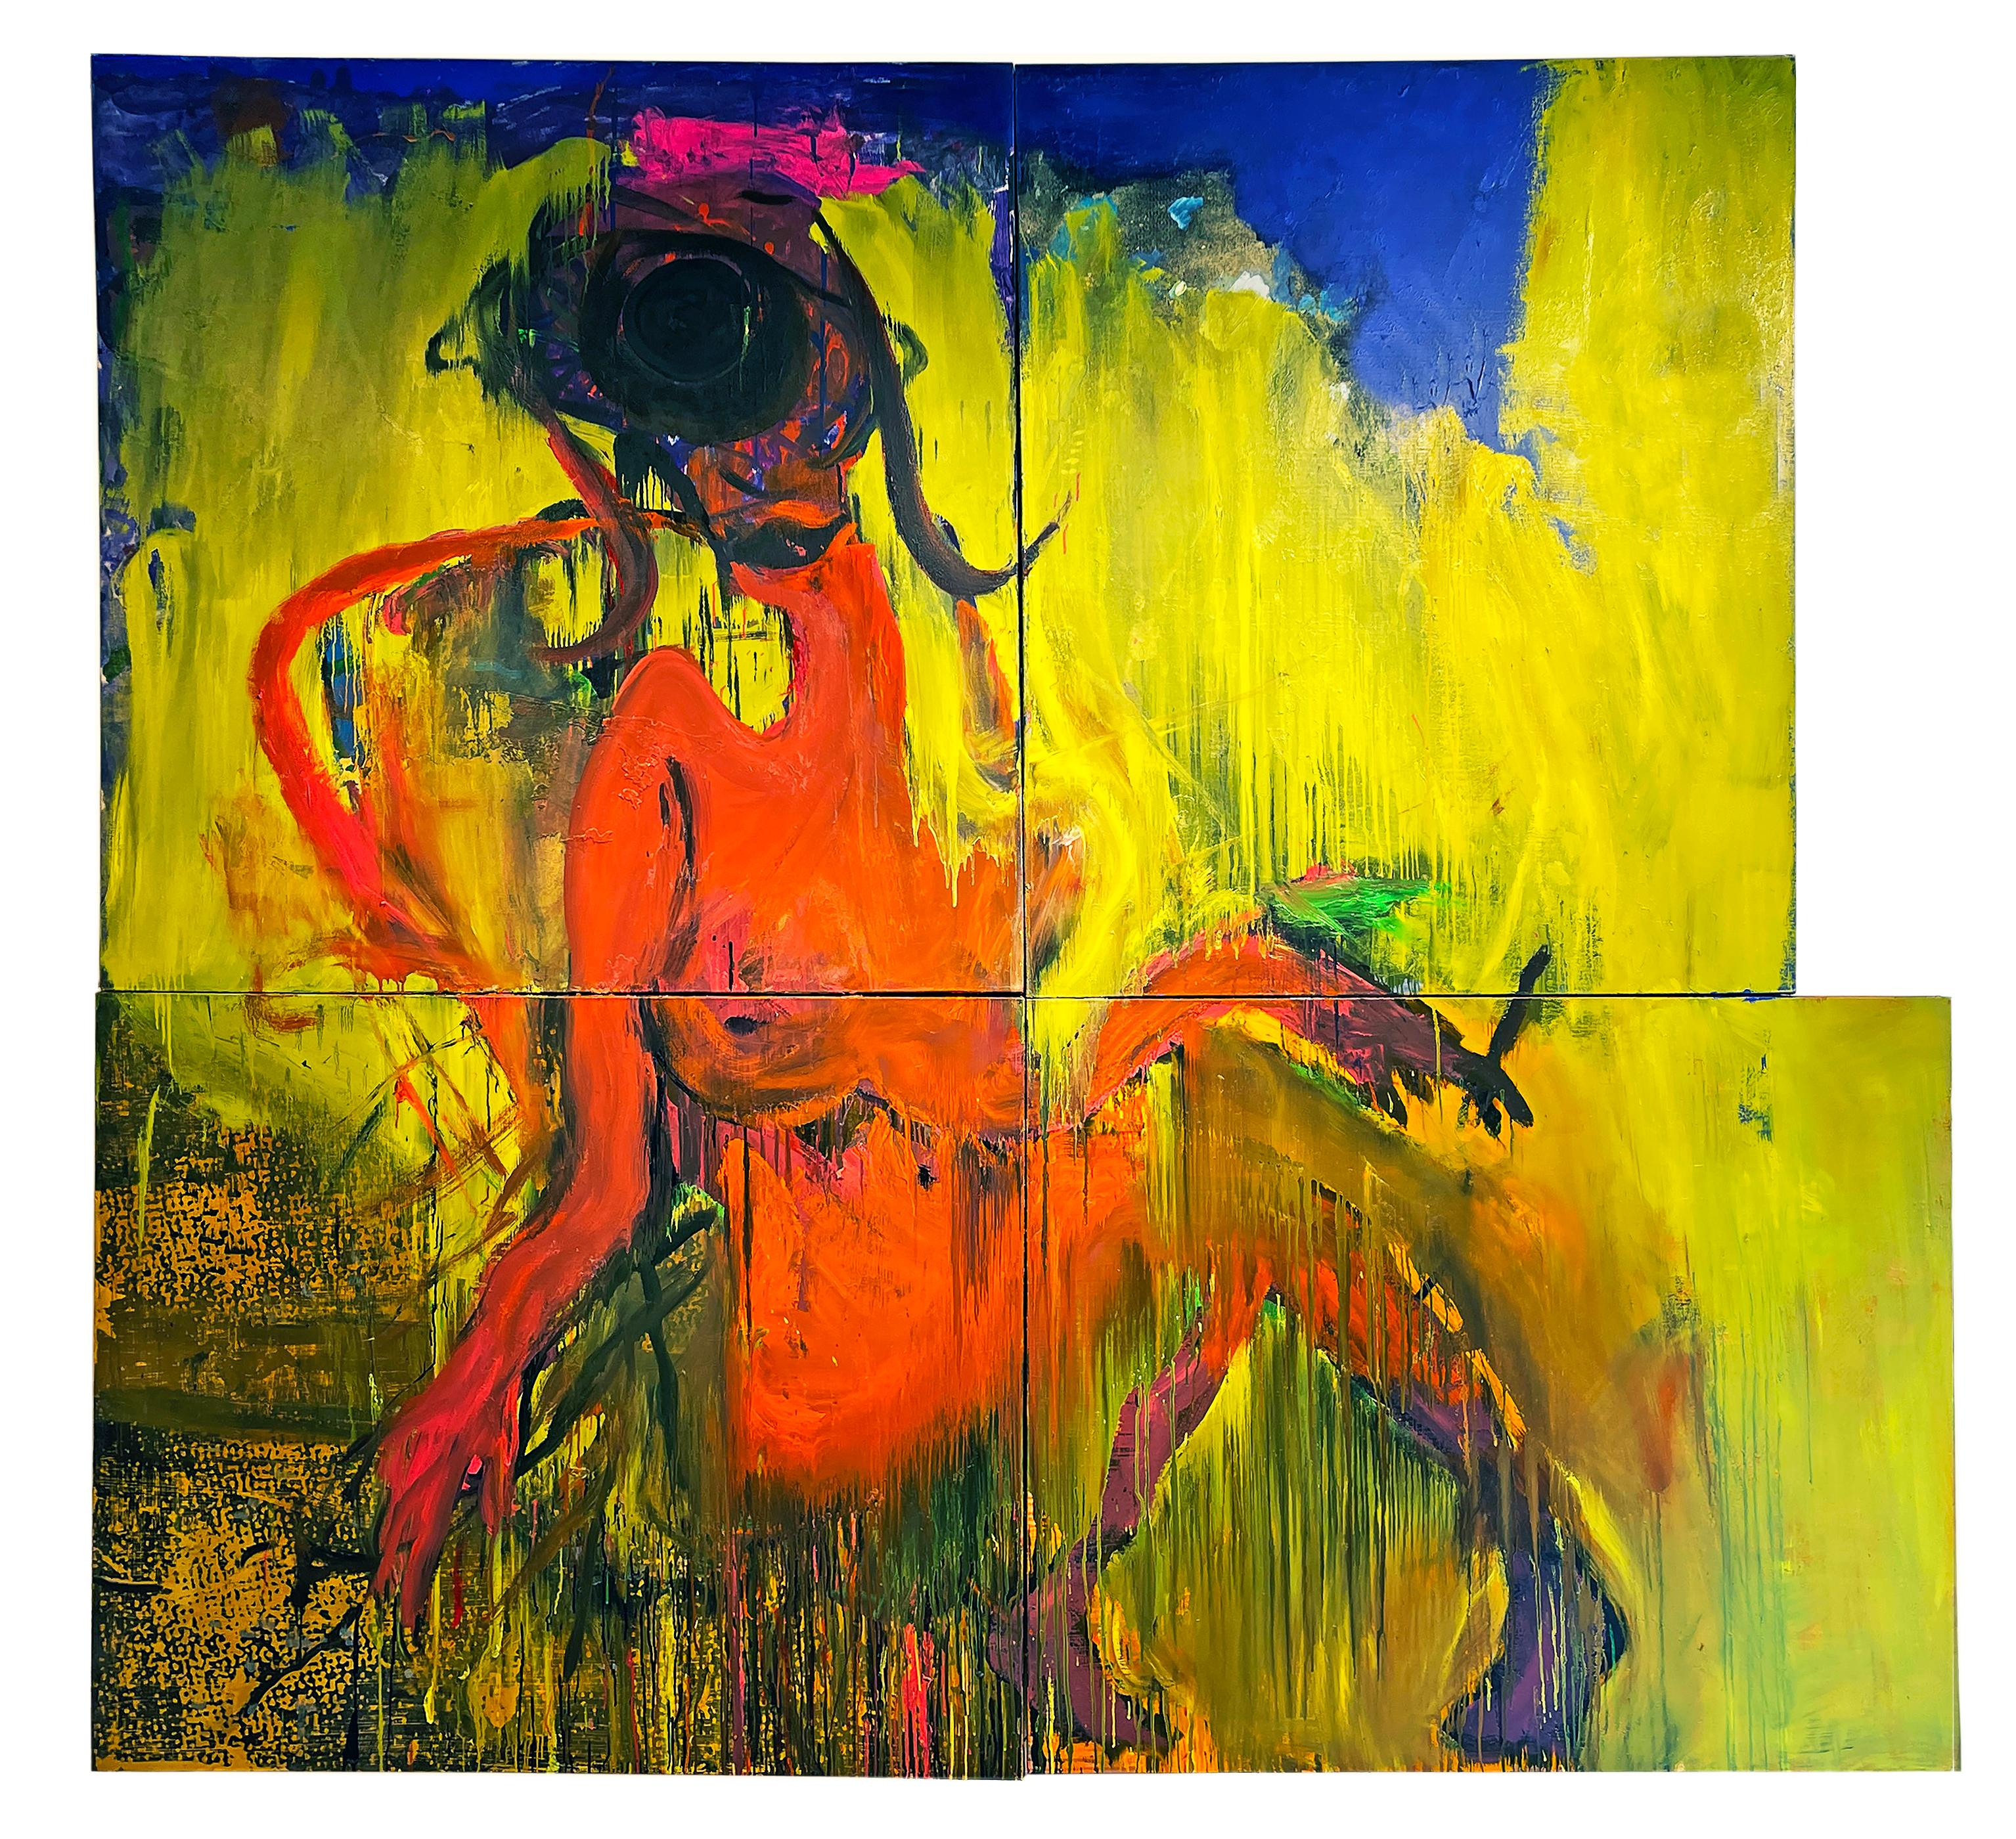 The Maven - Monumental Scale Reclining Figure, Abstract Expressionist Painting